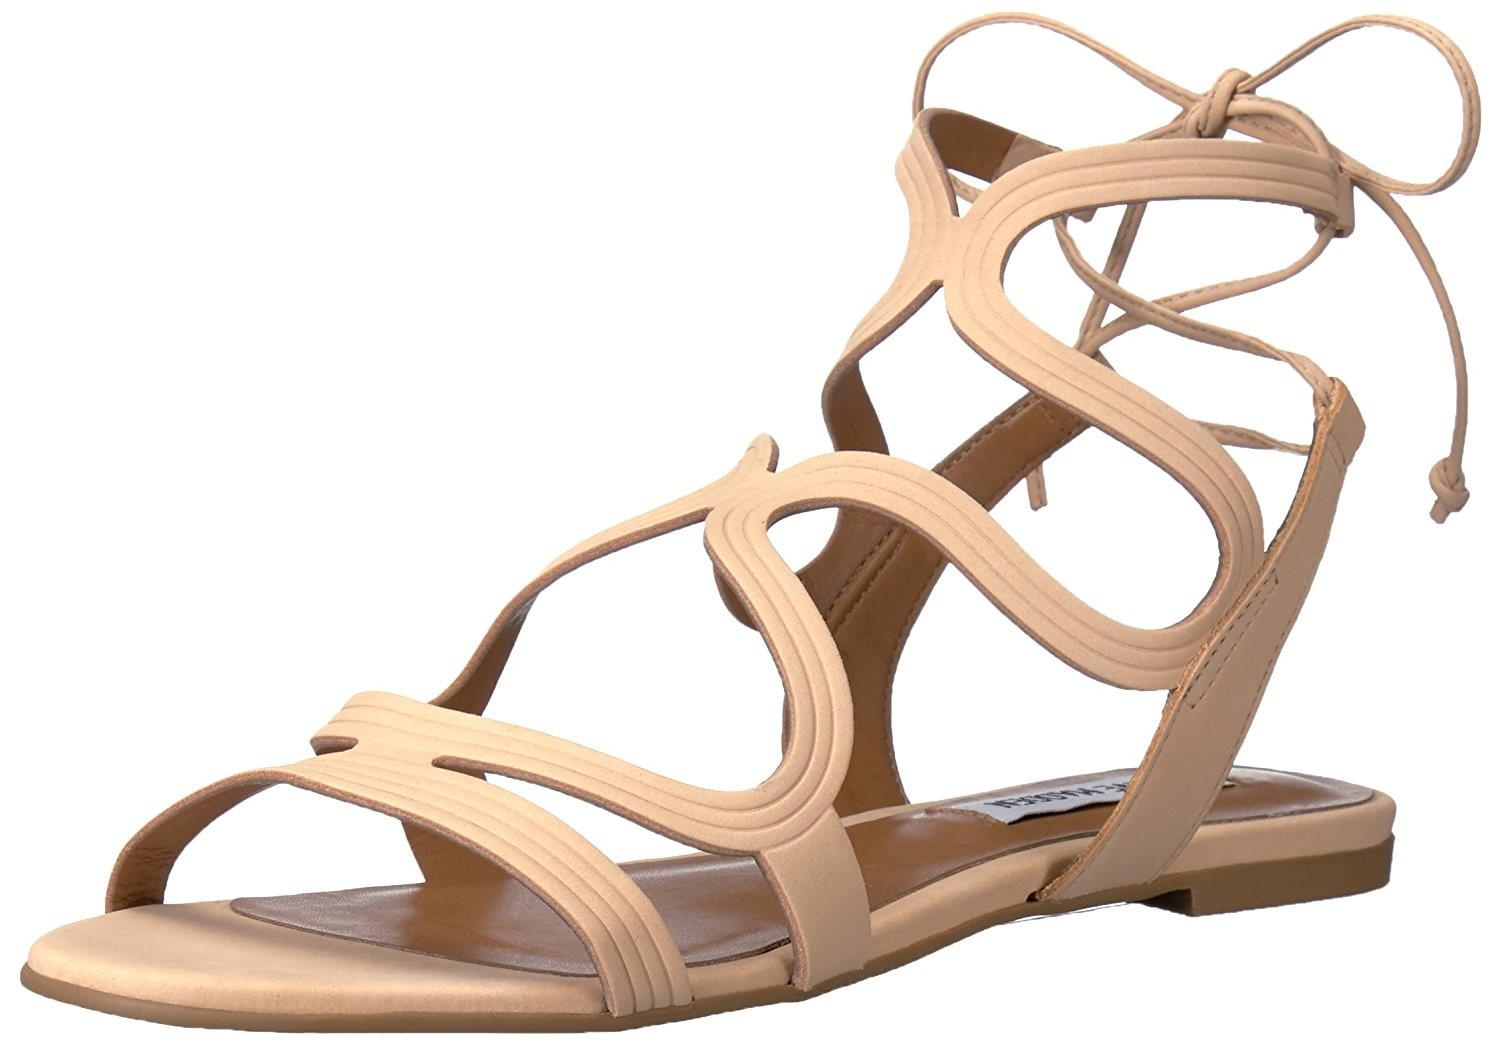 Steve Madden. Women's Natural Cece Leather Open Toe Casual Gladiator Nude